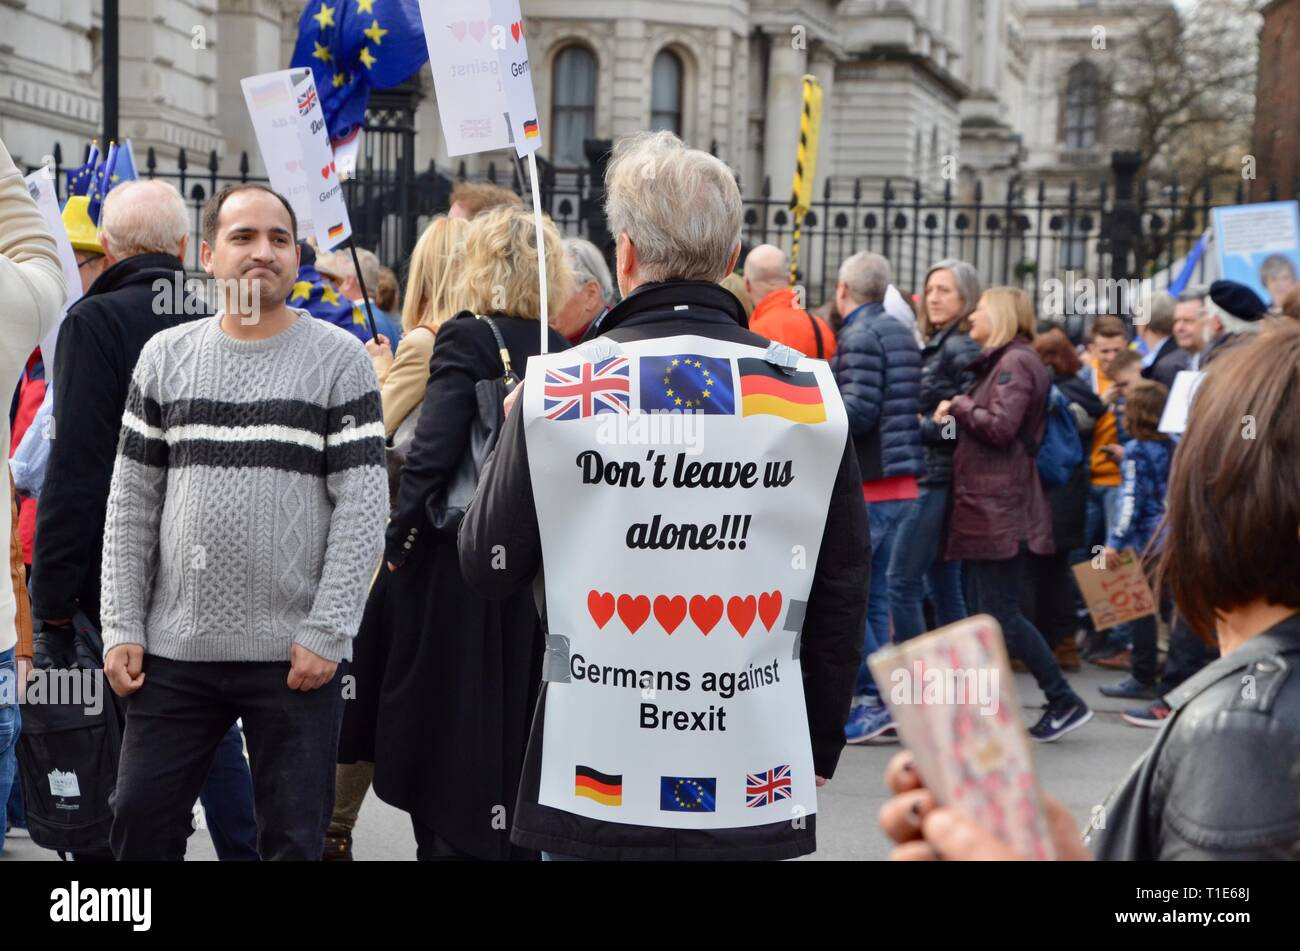 scenes from the anti brexit pro peoples vote march in london 23rd march 2019 german man appeals for UK to stay - Stock Image